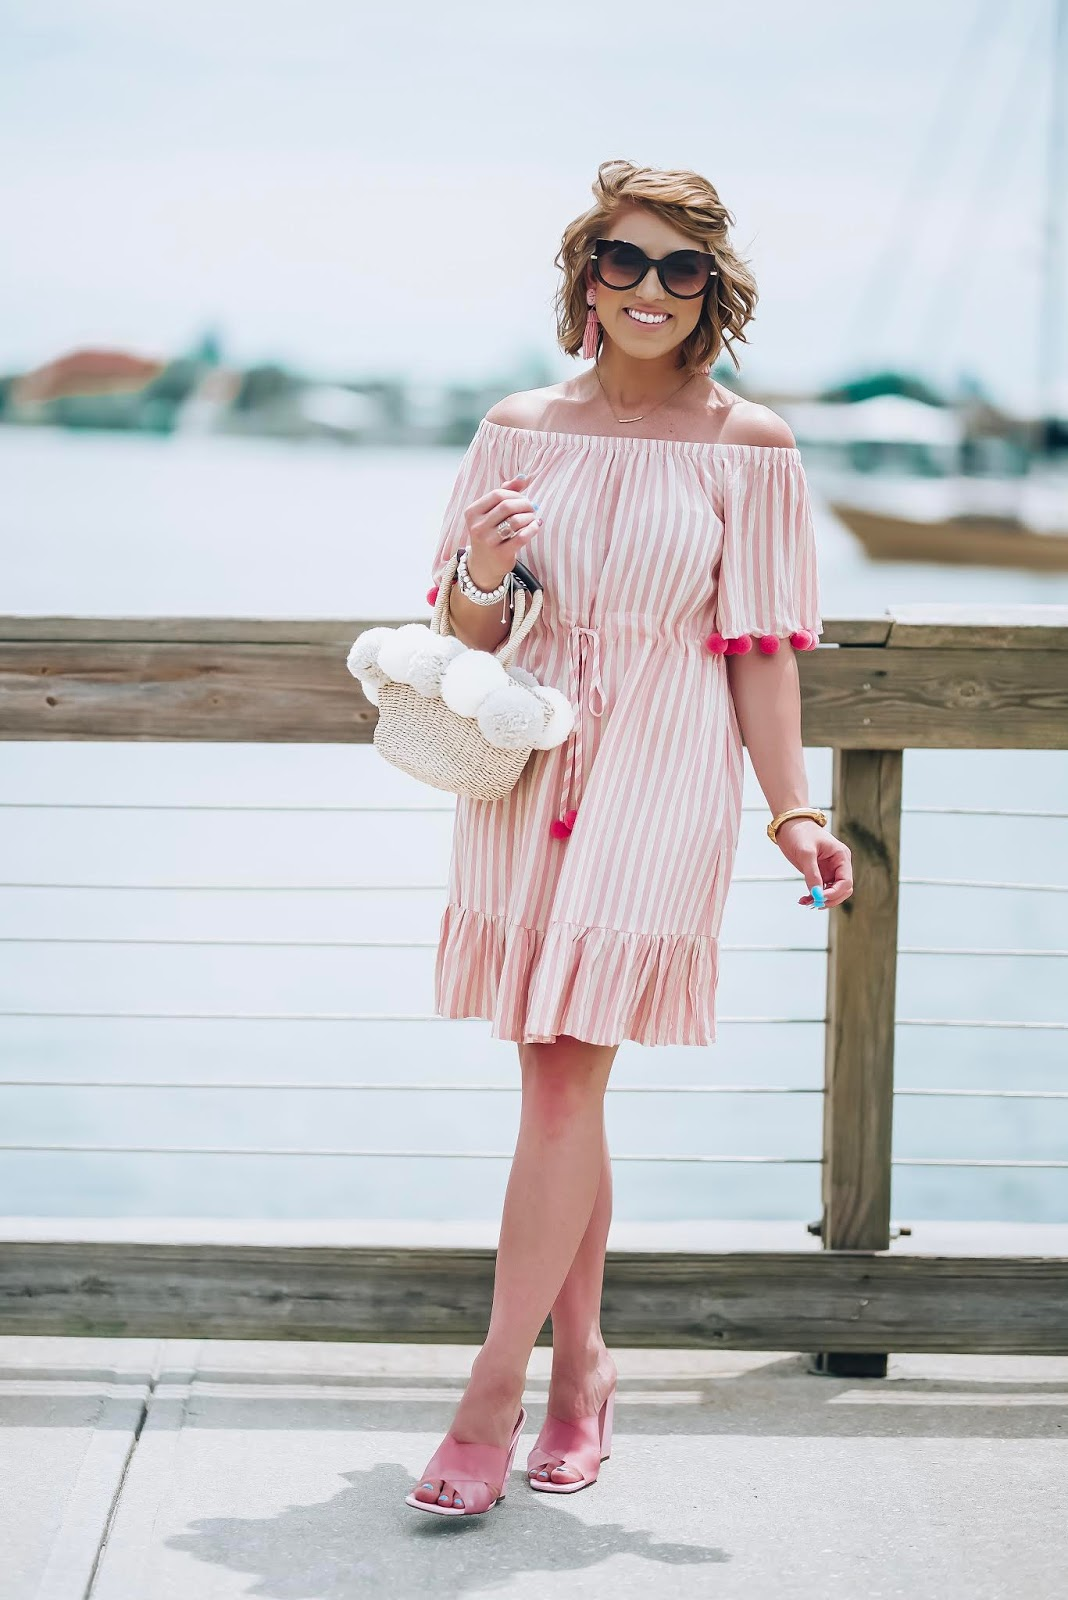 $24 Amazon Pink Stripe Pom Pom Dress + Recent Amazon Finds - Something Delightful Blog